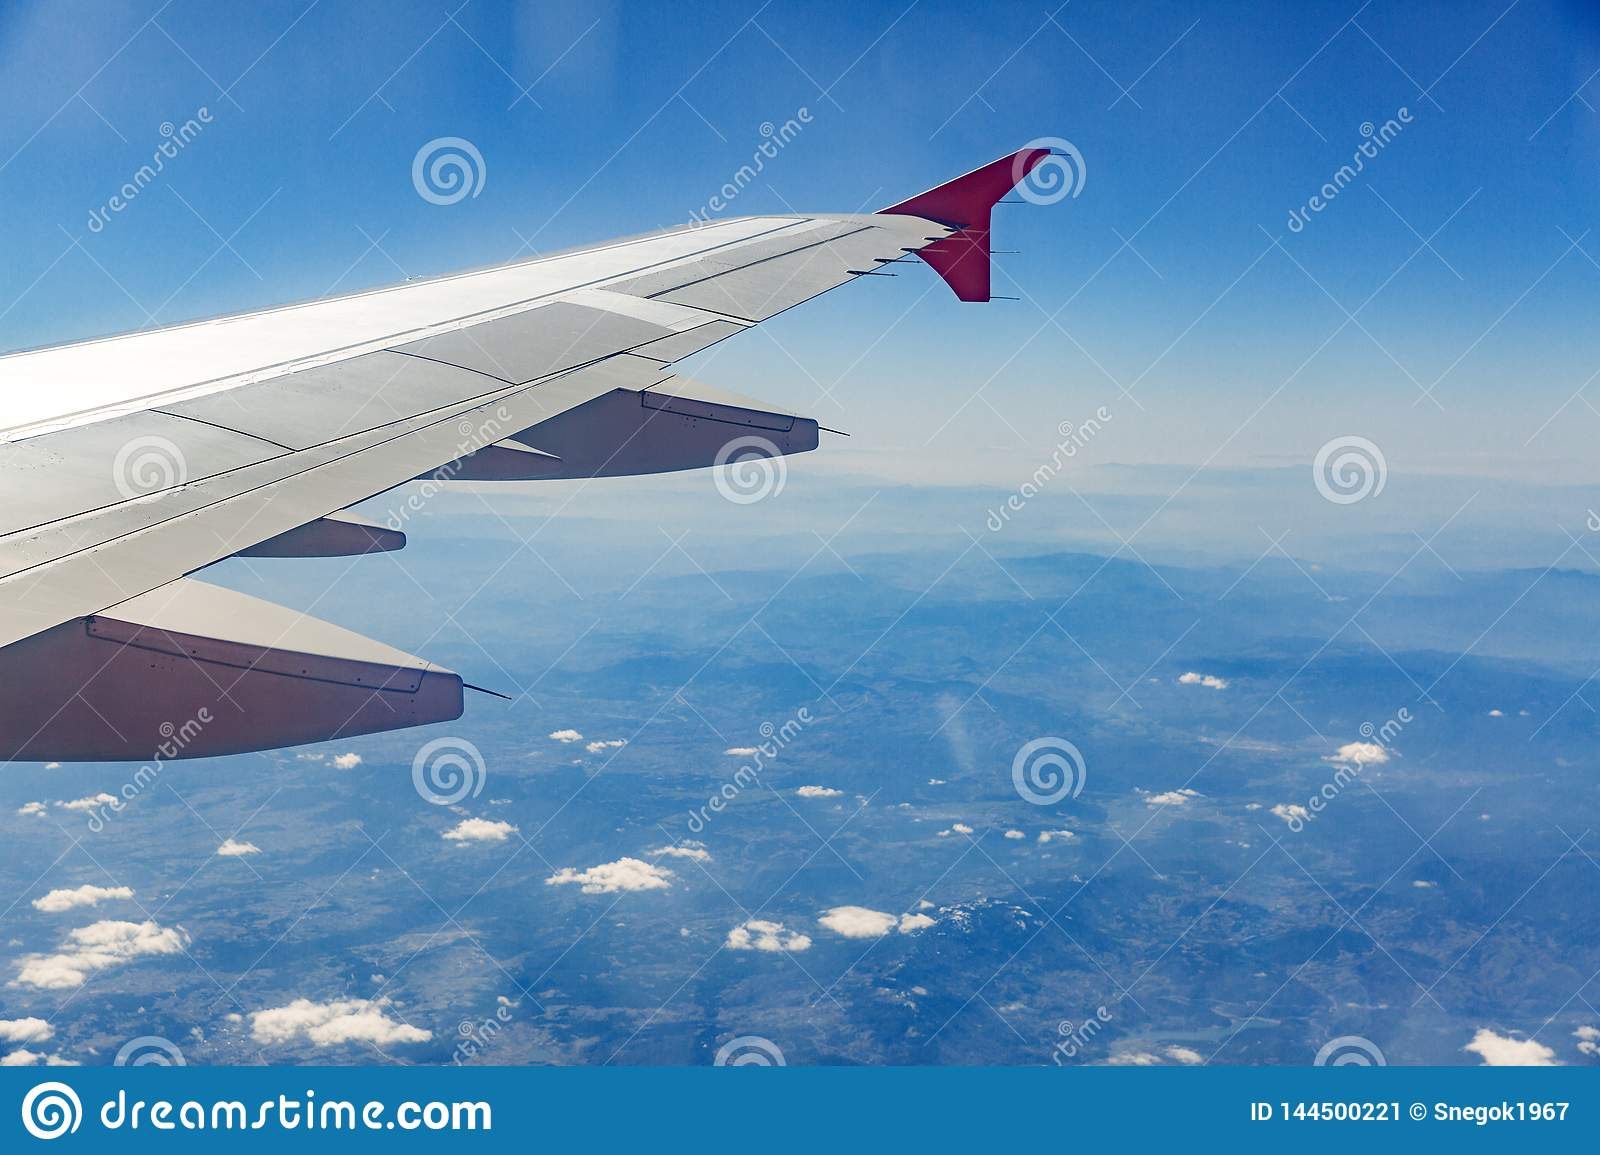 Aircraft wing on the clouds, flies on the city background